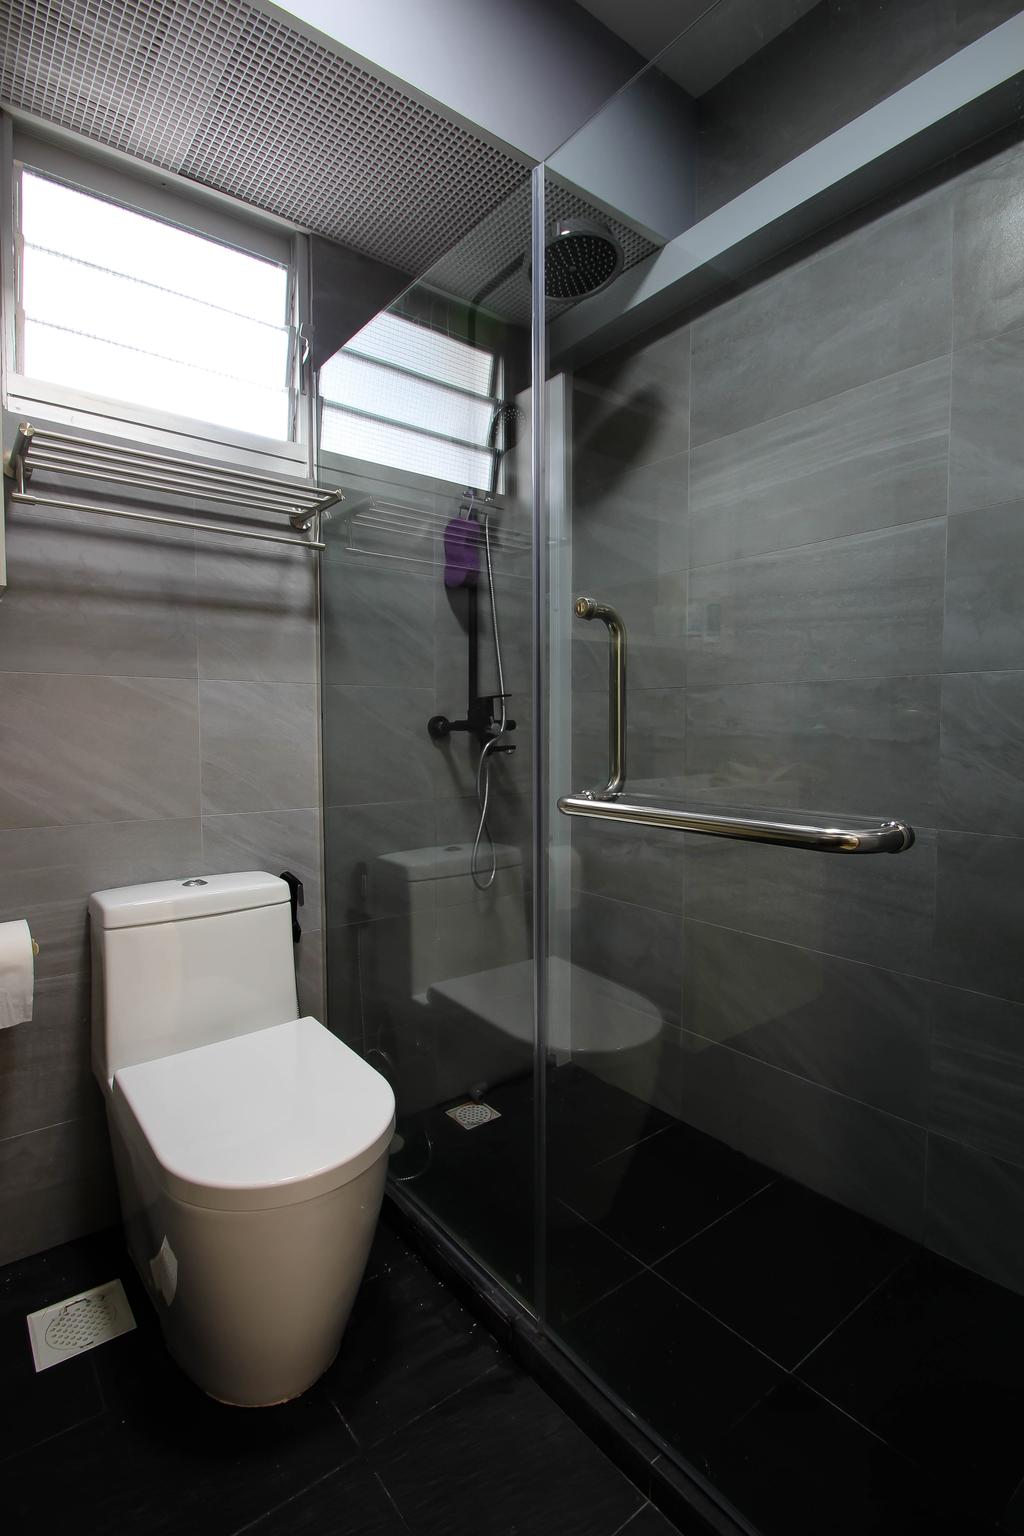 Scandinavian, HDB, Bathroom, Punggol, Interior Designer, Fifth Avenue Interior, Water Closet, White Water Closet, Toilet Bowl, White Toilet Bowl, Grey Bathroom, Grey Toilet, Grey Tiles, Simple Toilet, Minimalist, Minimalist Toilet, Glass Door, Glass Panels, Shower Glass, Shower Glass Door, Shower Area, Glass Door Handle, Toilet